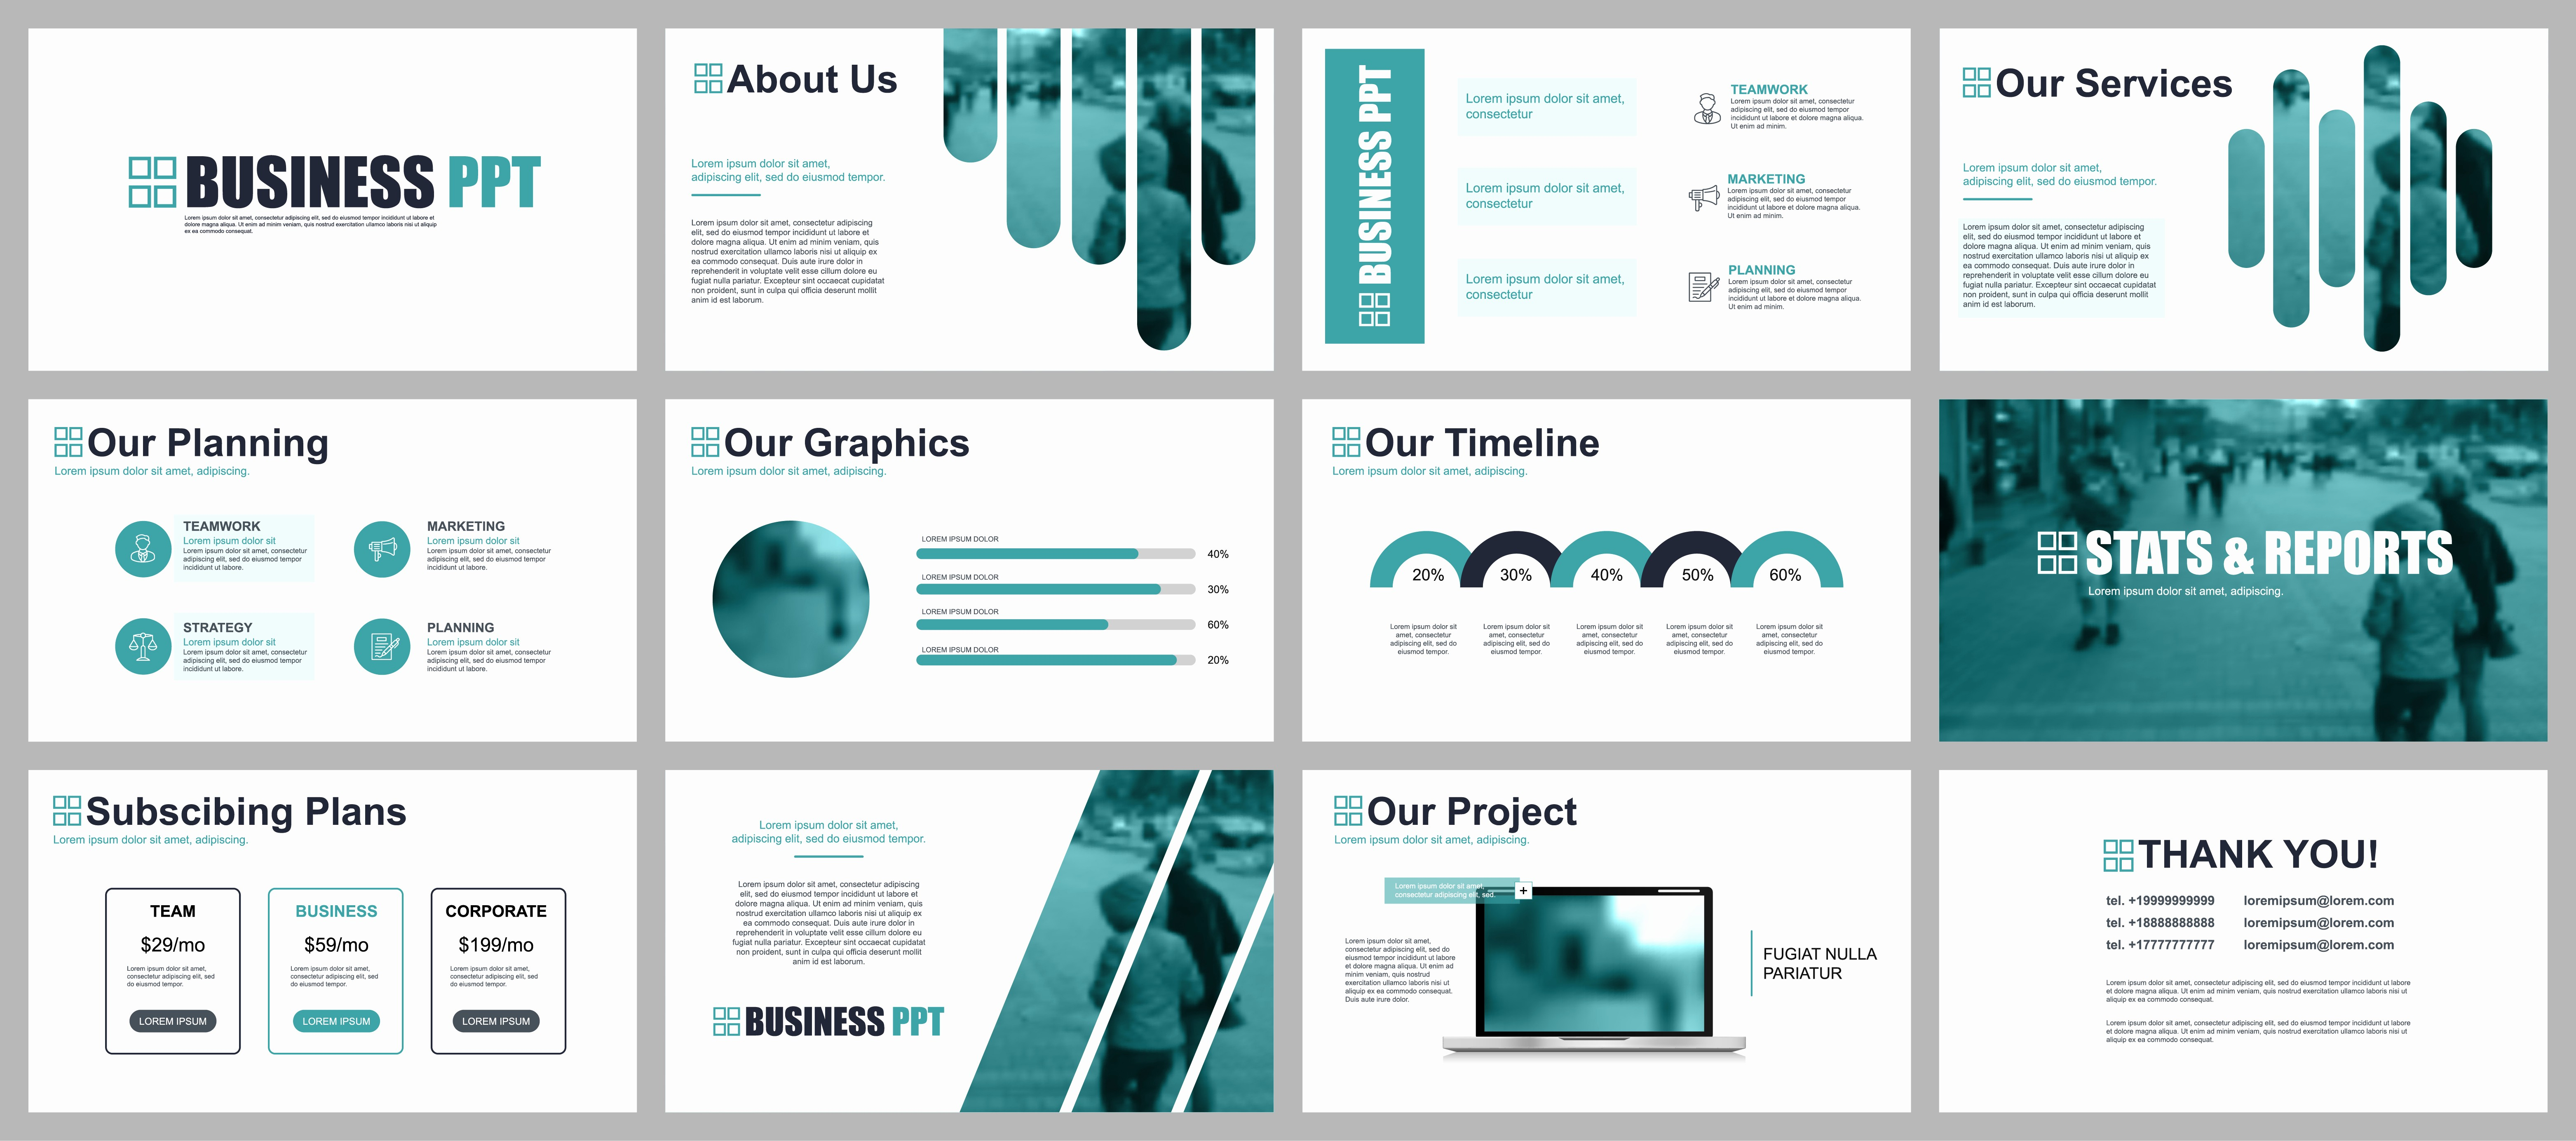 Ppt Templates for Business Presentation Best Of Business Presentation Powerpoint Slides Templates